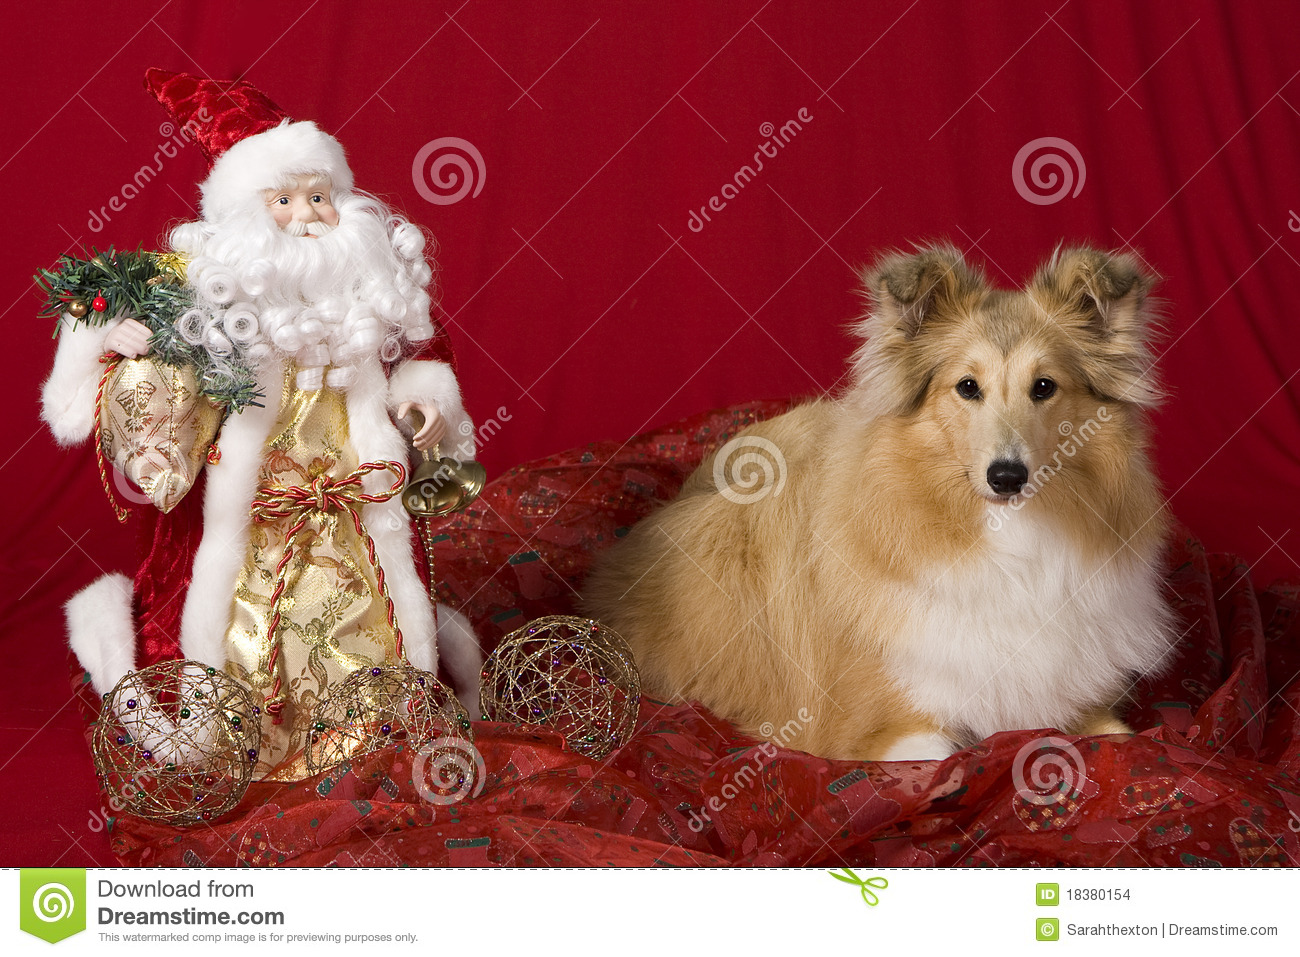 Sheltie puppy with Christmas theme